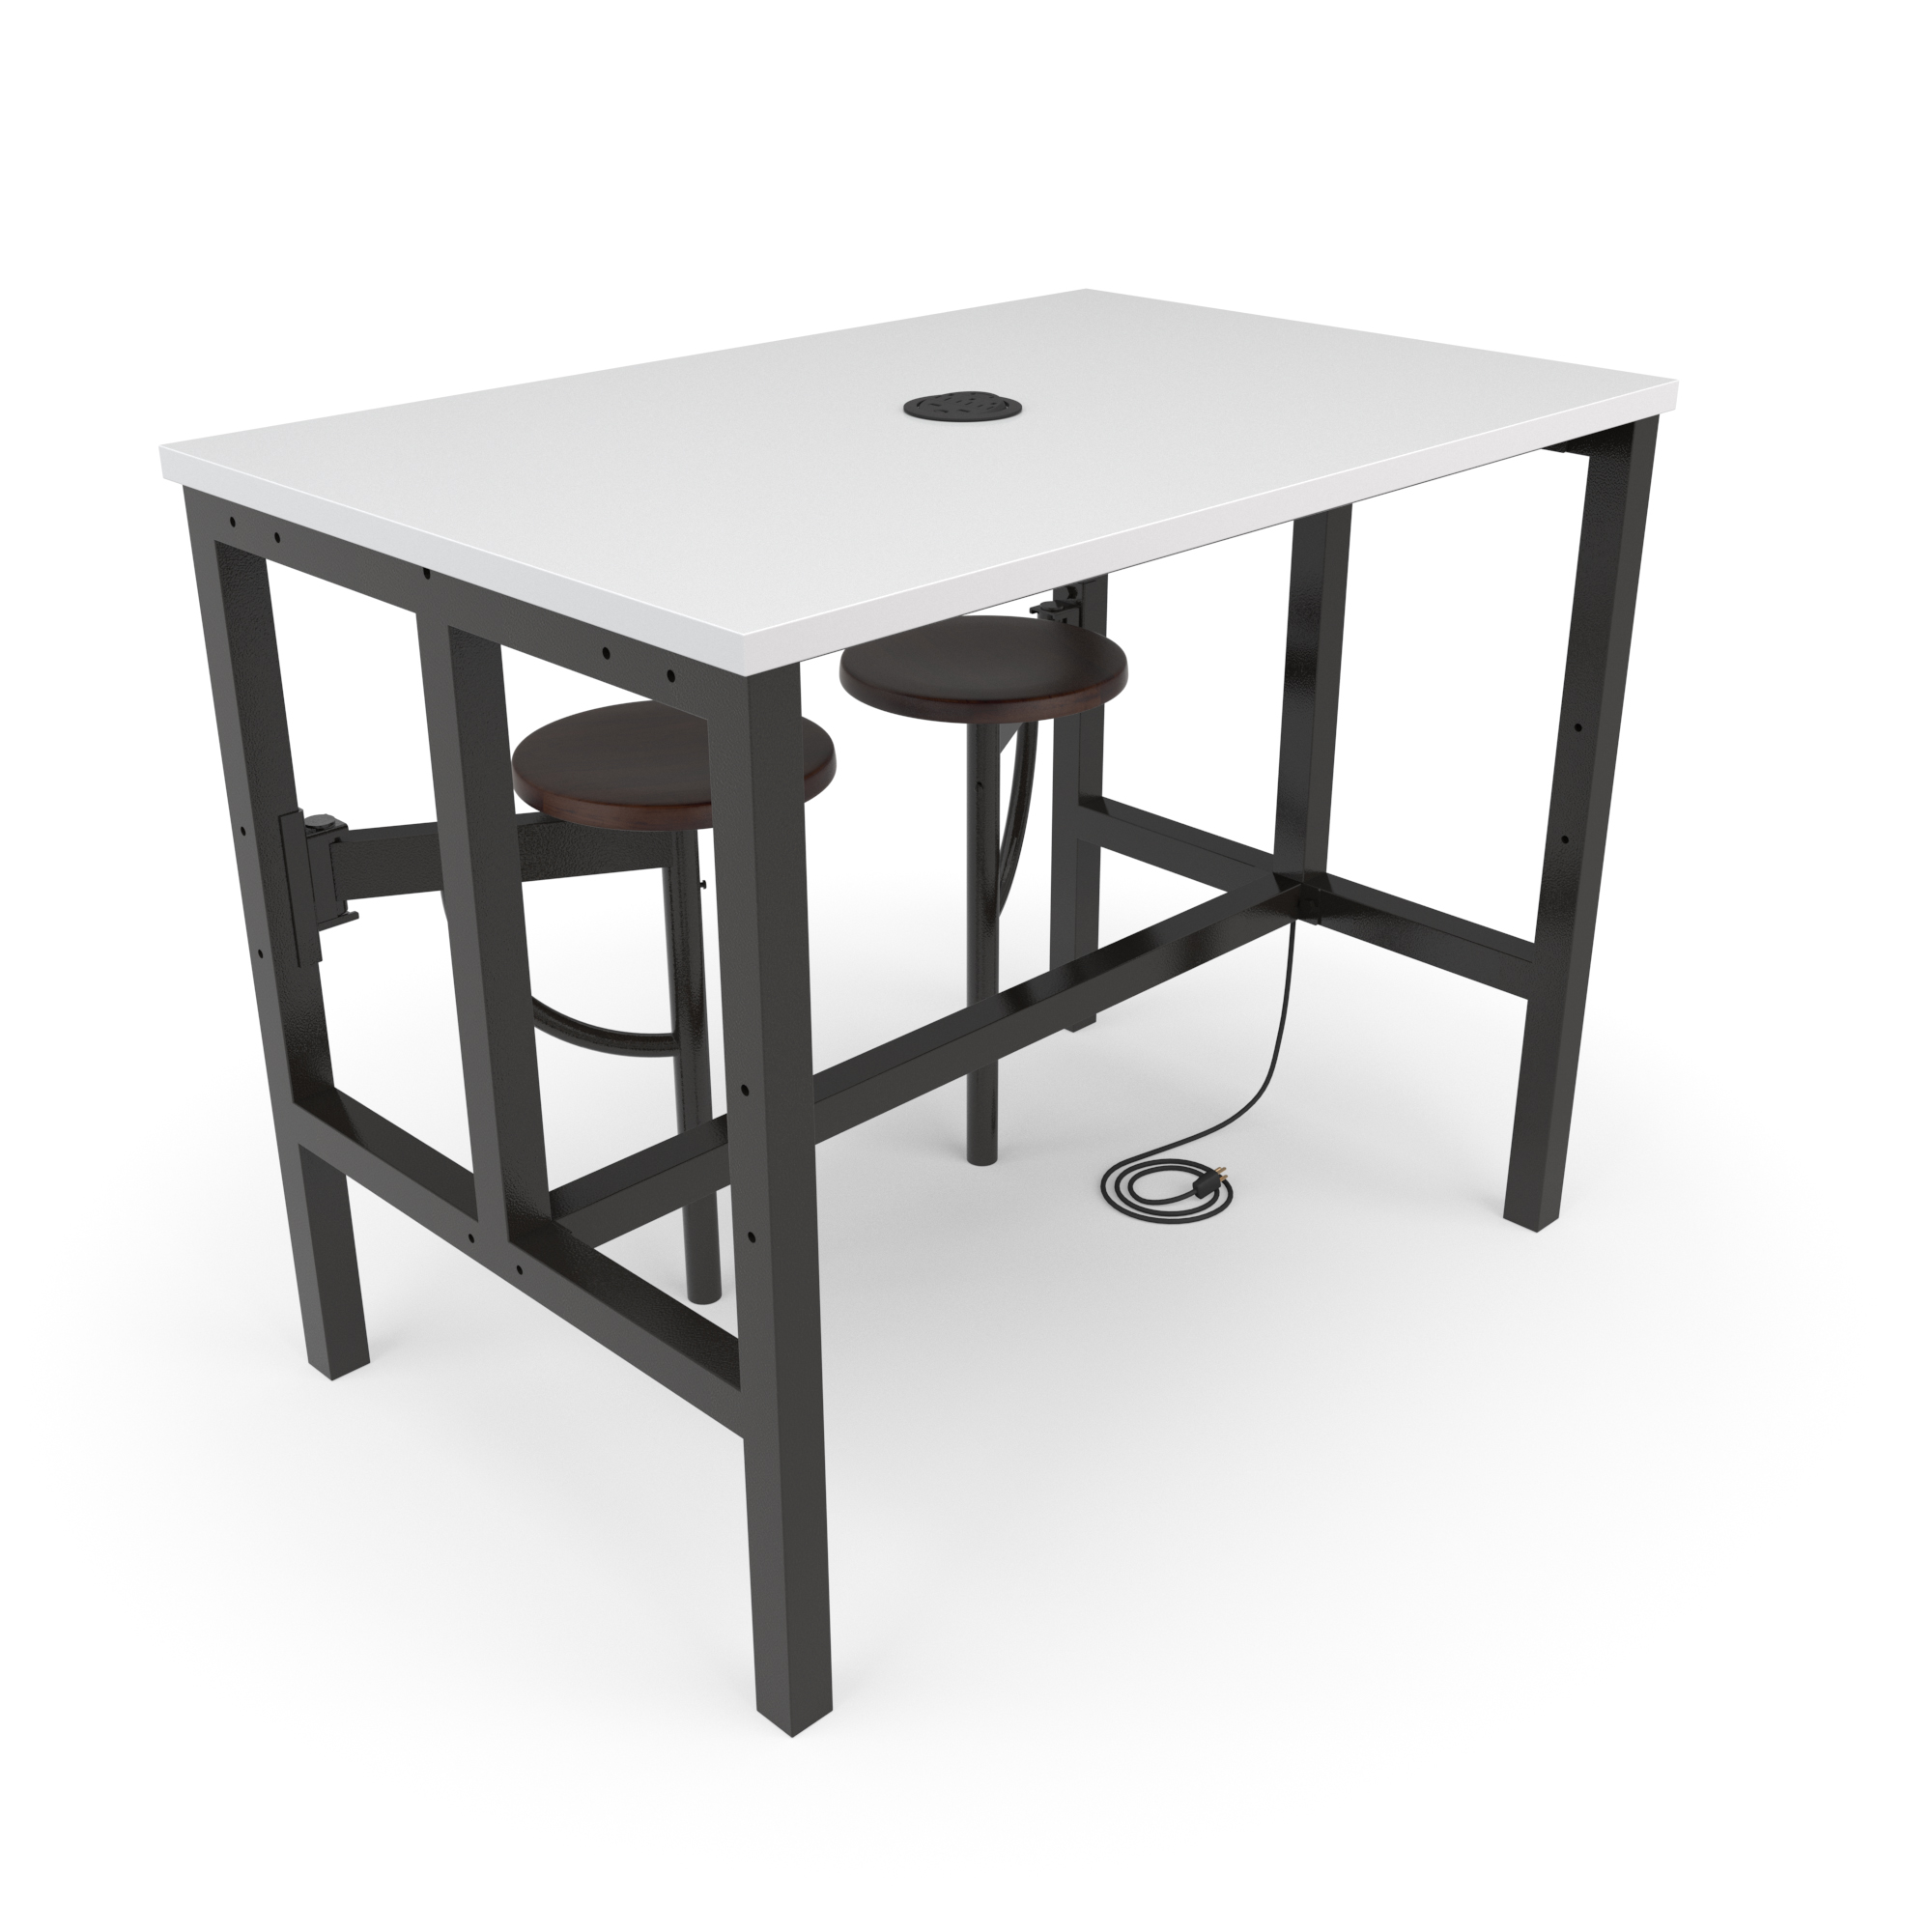 OFM Endure Series Model 9004-2S Standing Height 2 Seat Table, White Dry-Erase Top with Dark Vein Seats